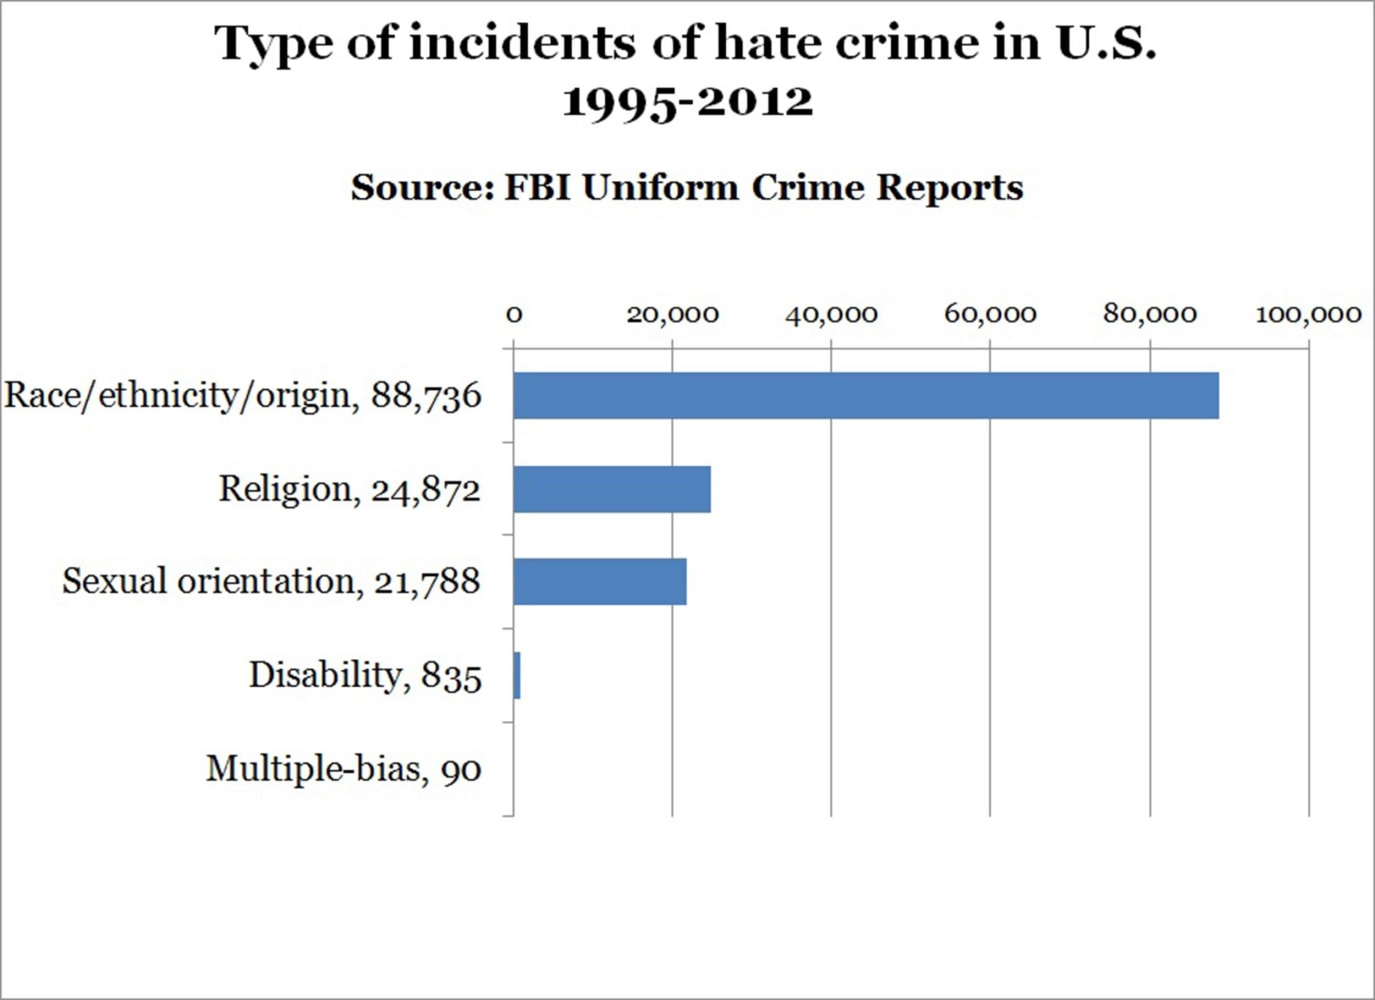 crimes crime and younger jewish americans A second reason crime is underreported is that when several crimes are committed by an offender at the same time, only one (usually the most severe) is counted in the data for example, if a juvenile offender robbed a store, assaulted a clerk, and killed a customer, only the homicide would be reported.